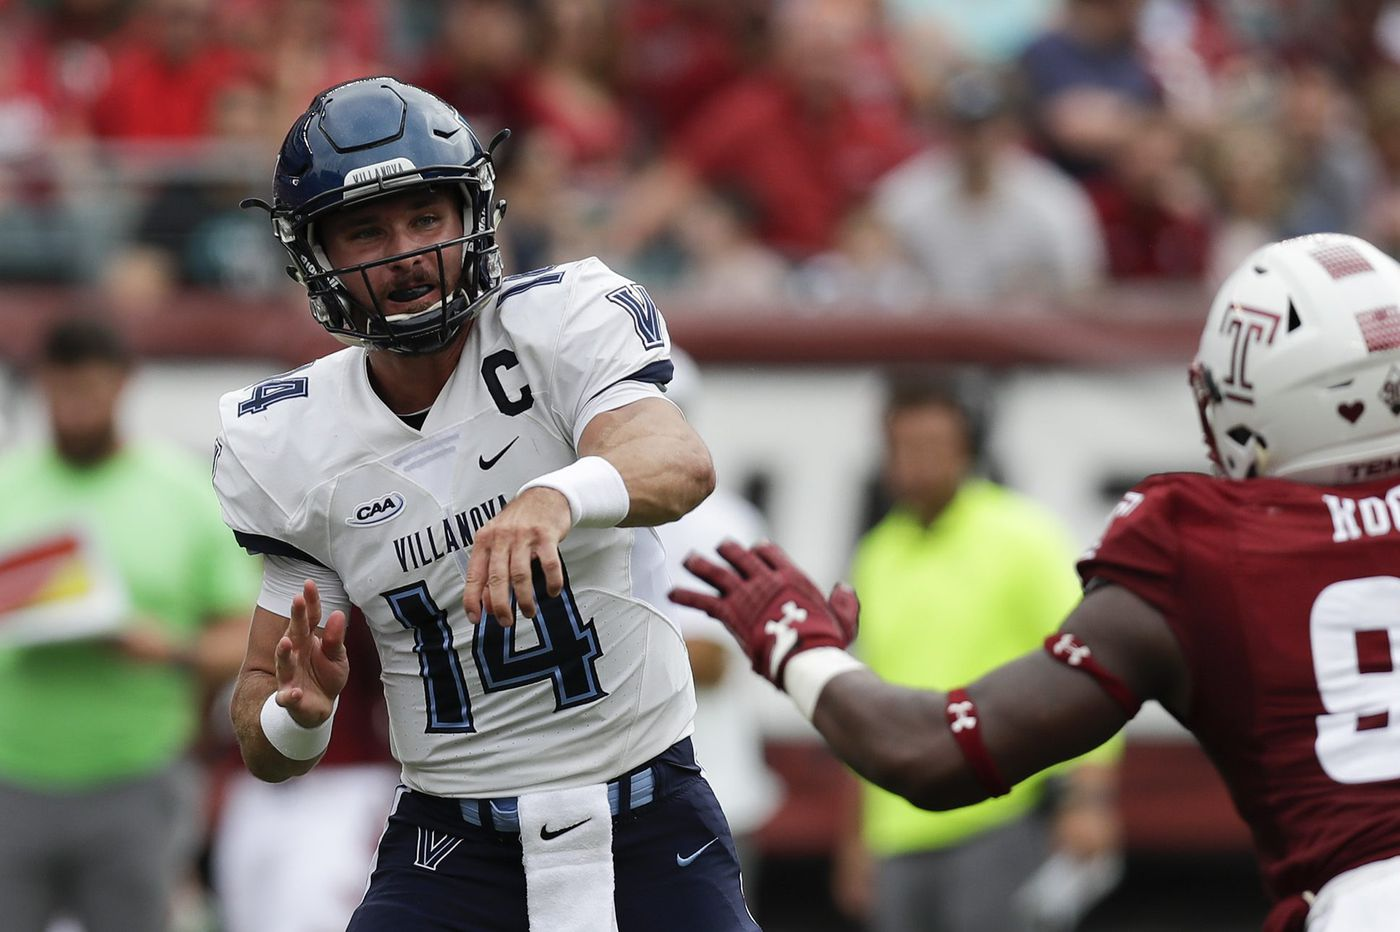 Villanova's Zach Bednarczyk is back throwing the ball and his receivers are catching it